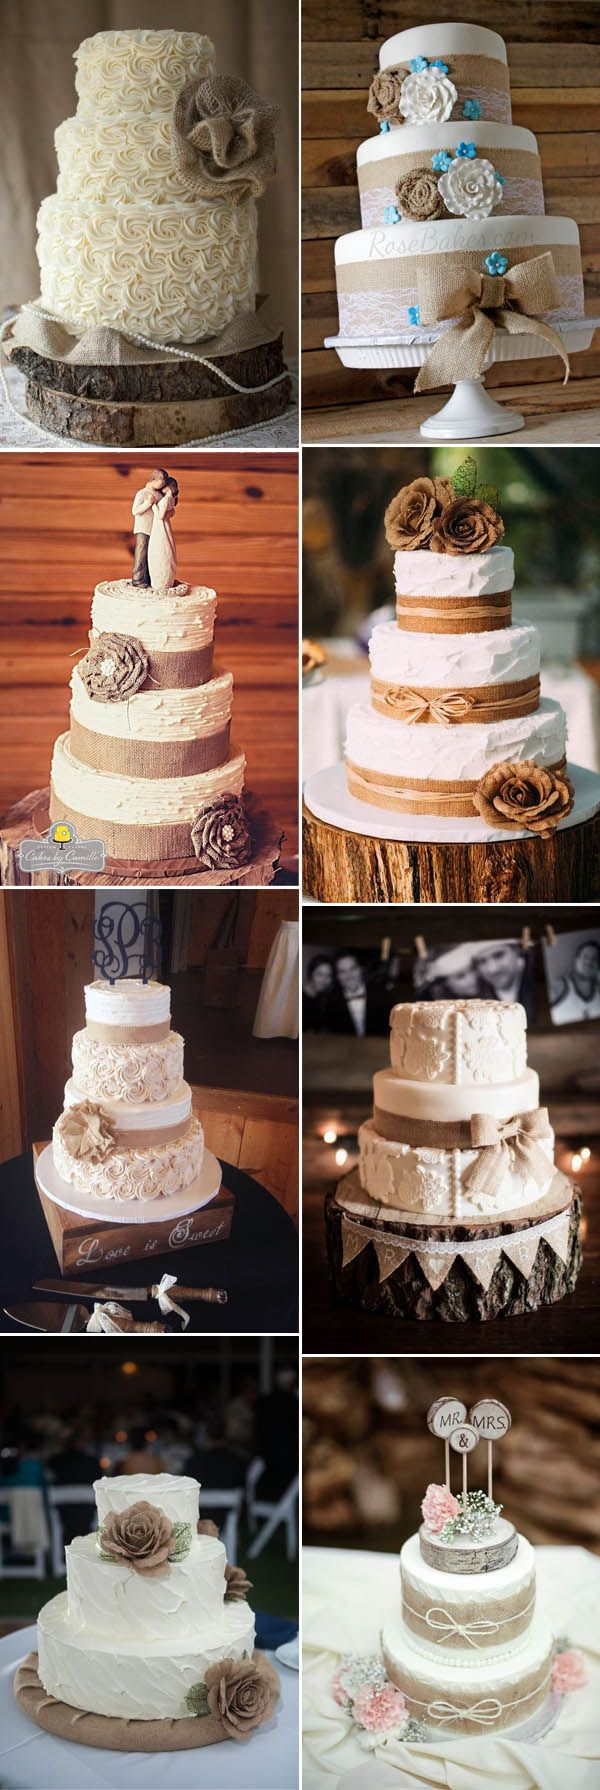 Let them eat cake rustic wedding chic - The Most Complete Burlap Rustic Wedding Ideas For Your Inspiration